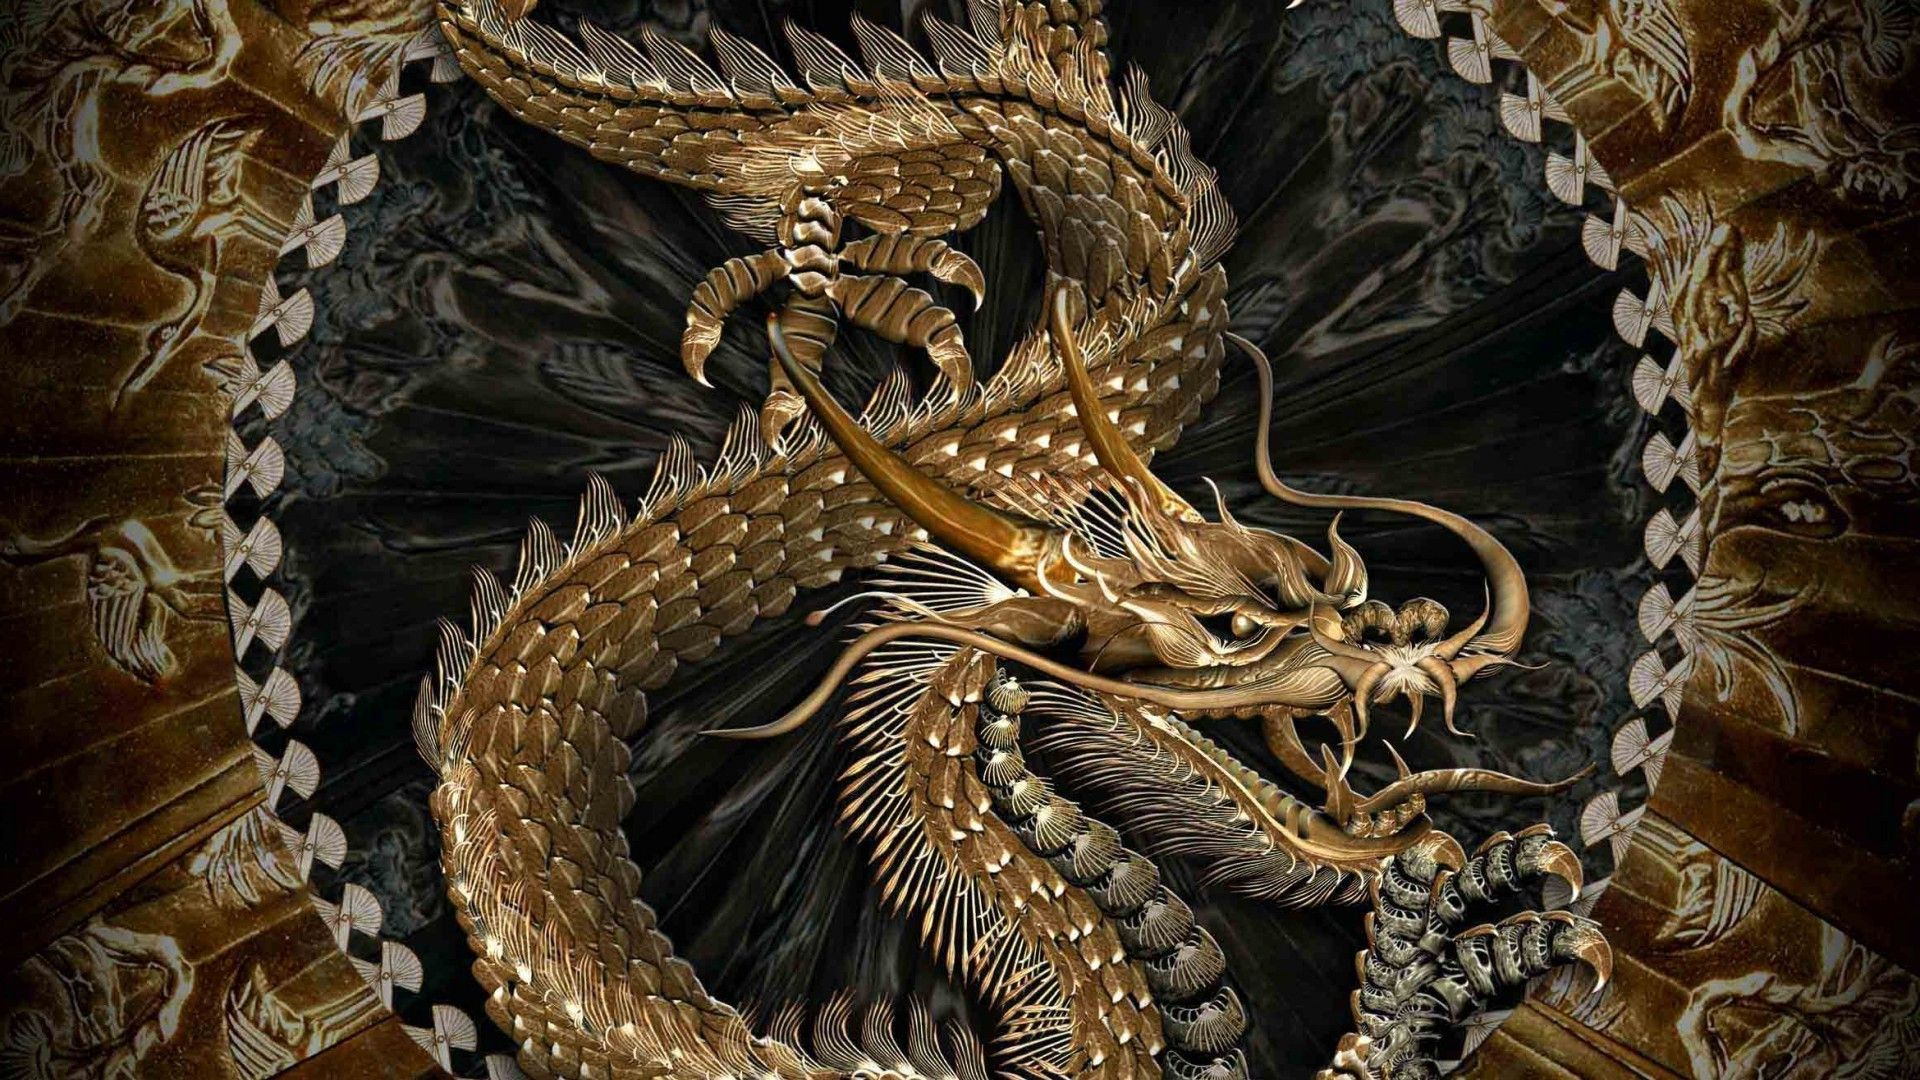 Chinese Dragon Desktop Wallpapers Top Free Chinese Dragon